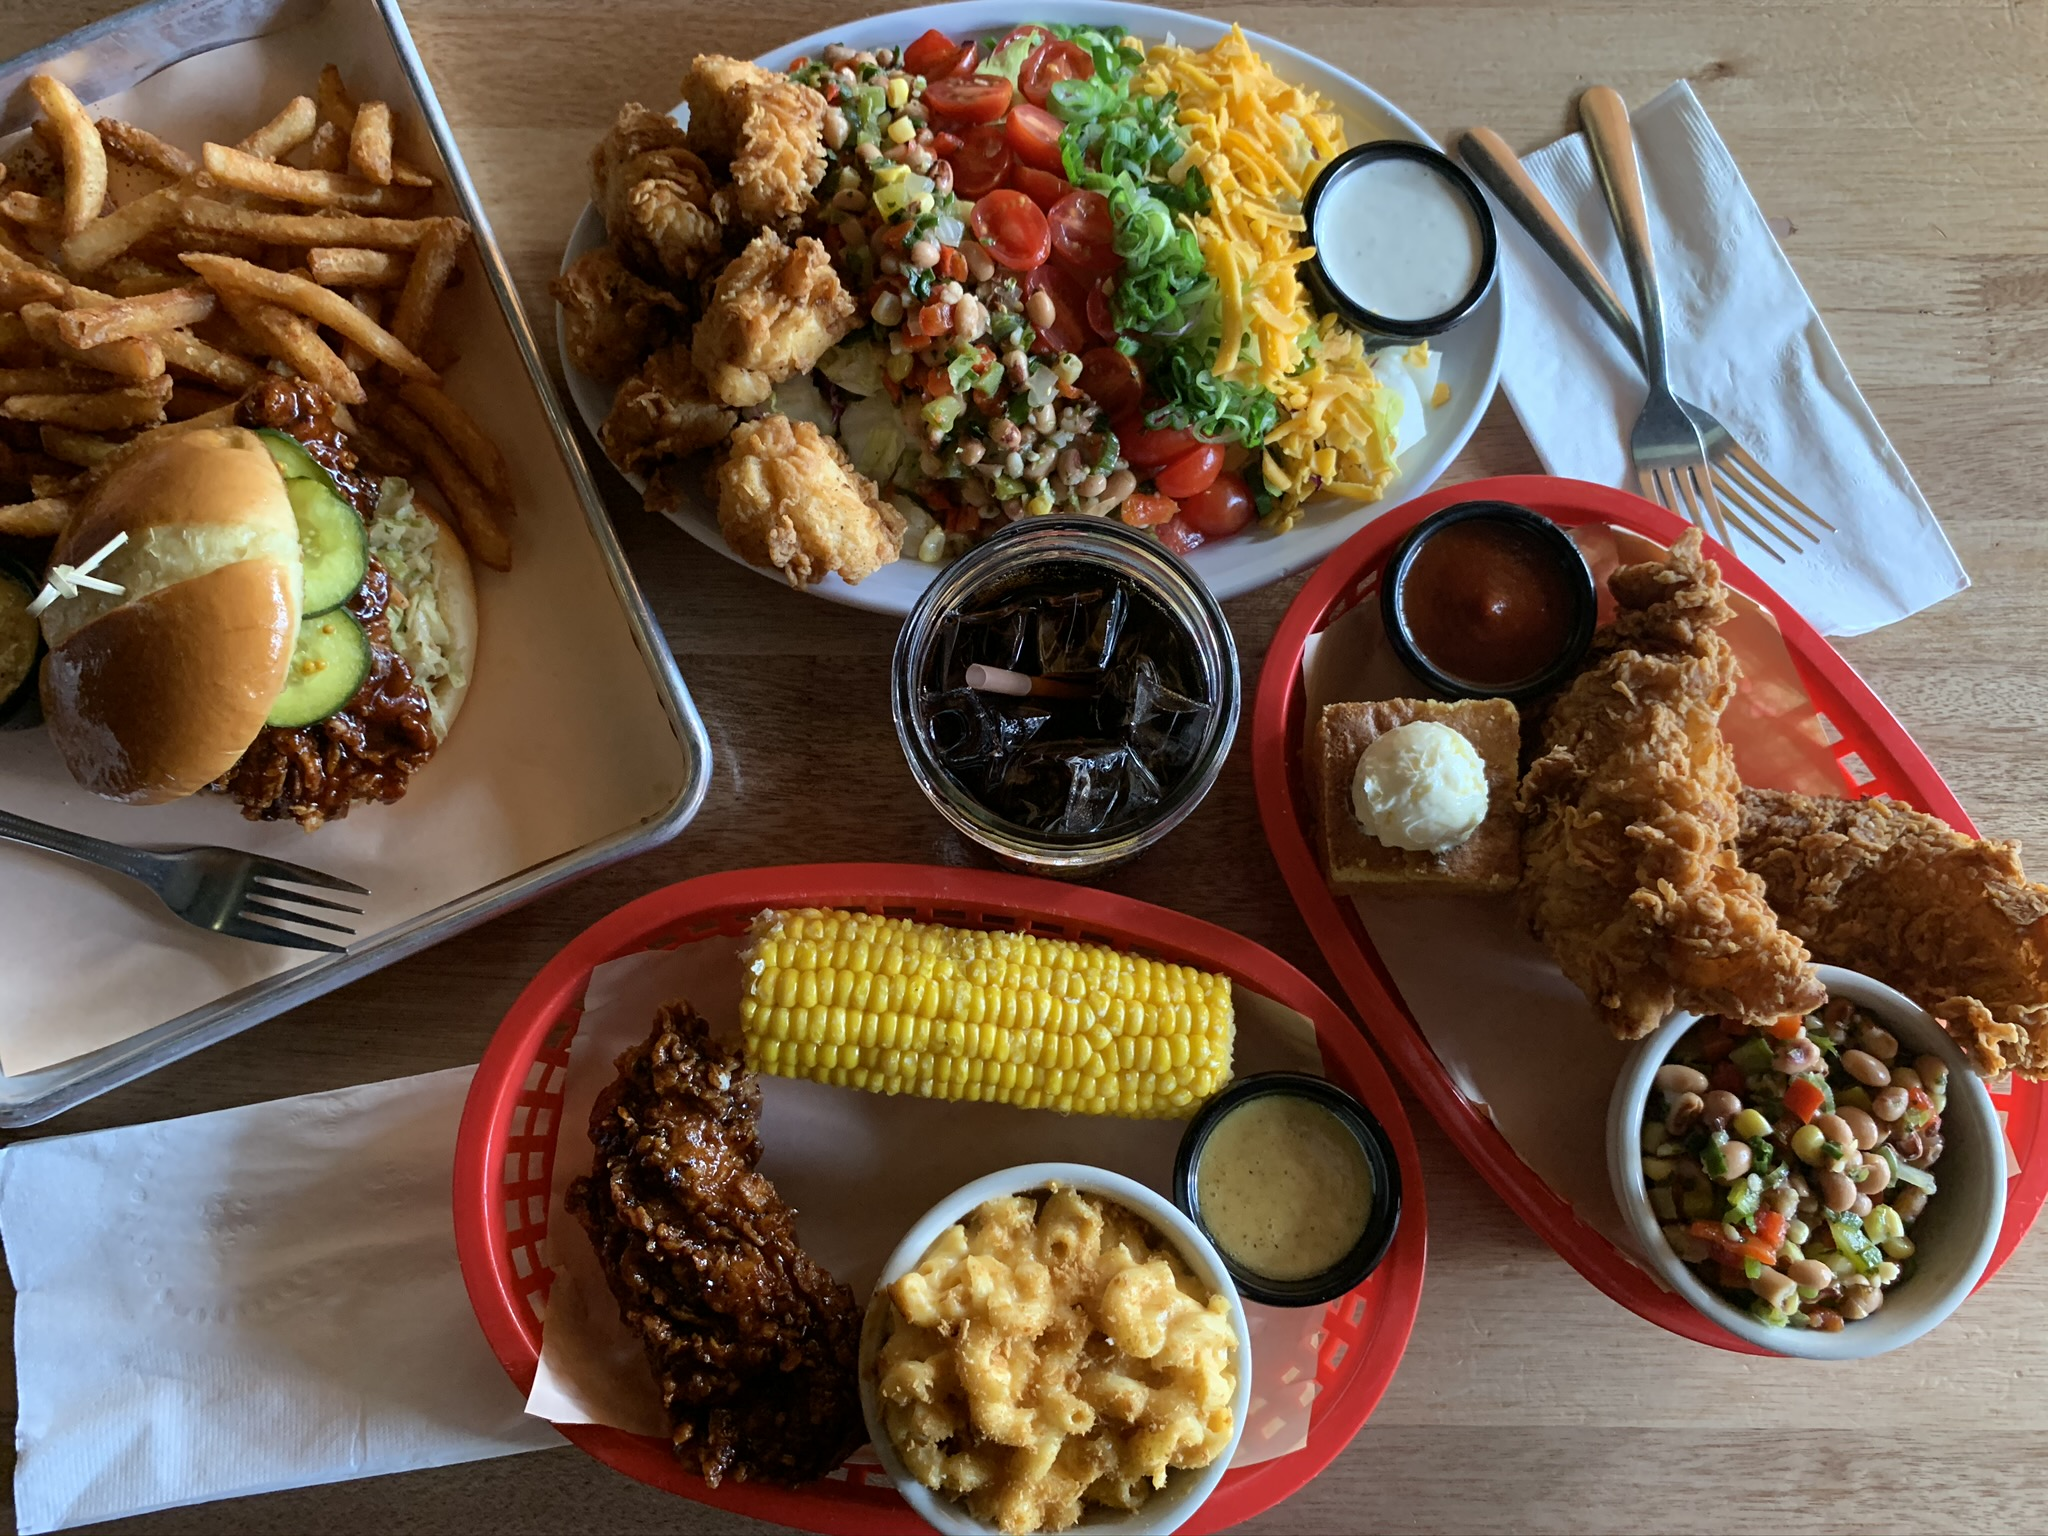 Fried chicken tenders, a fried chicken sandwich, a salad, and a selection of sides at Jack's Chicken Shack